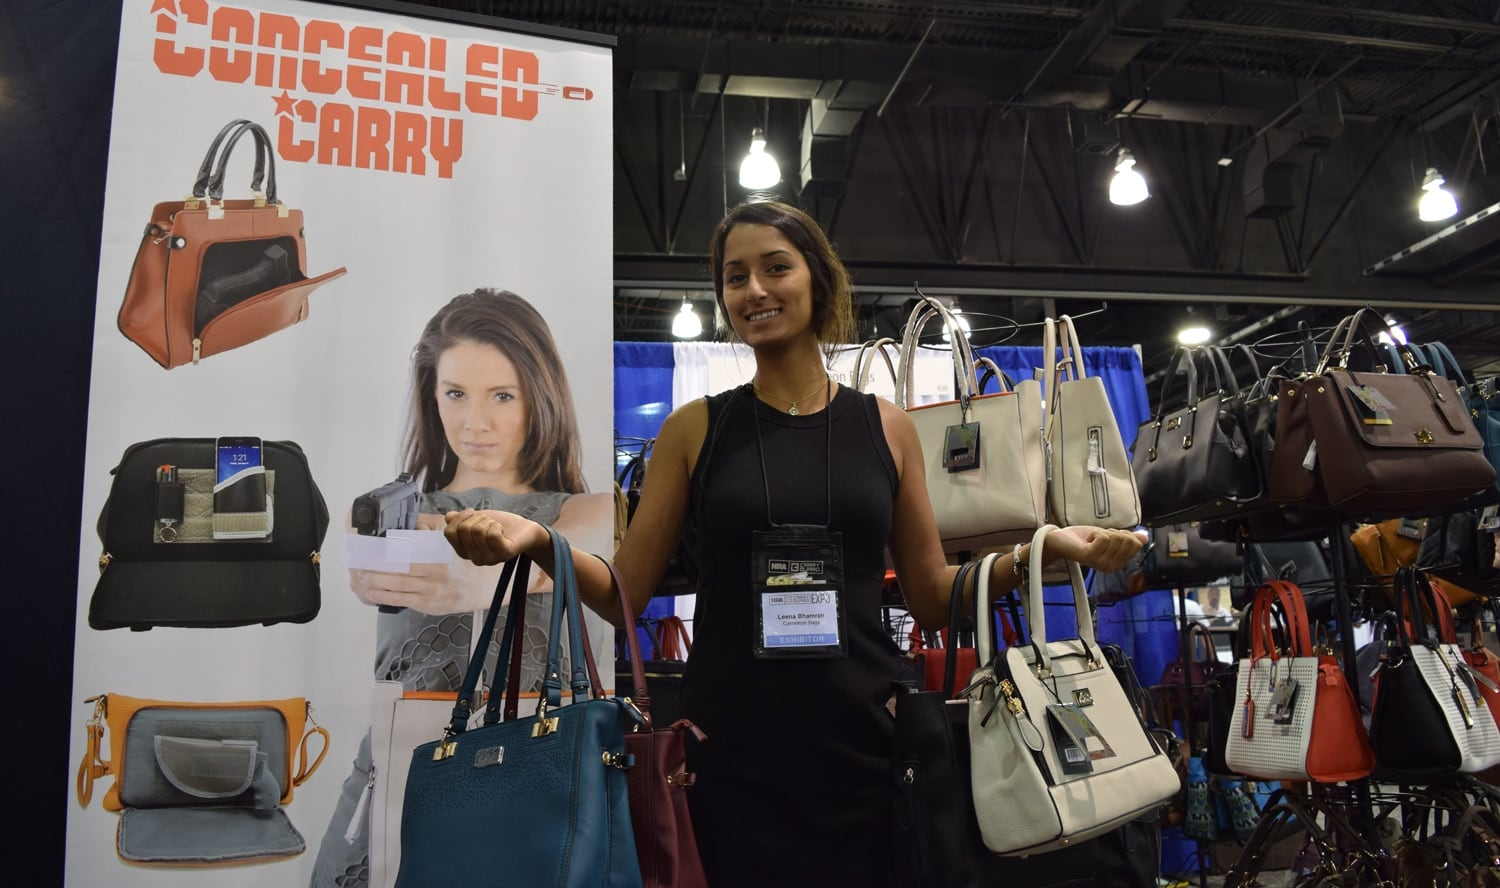 Bags, bags and more bags at Cameleon Bags, a concealed carry purse maker. (Photo: Daniel Terrill/Guns.com)